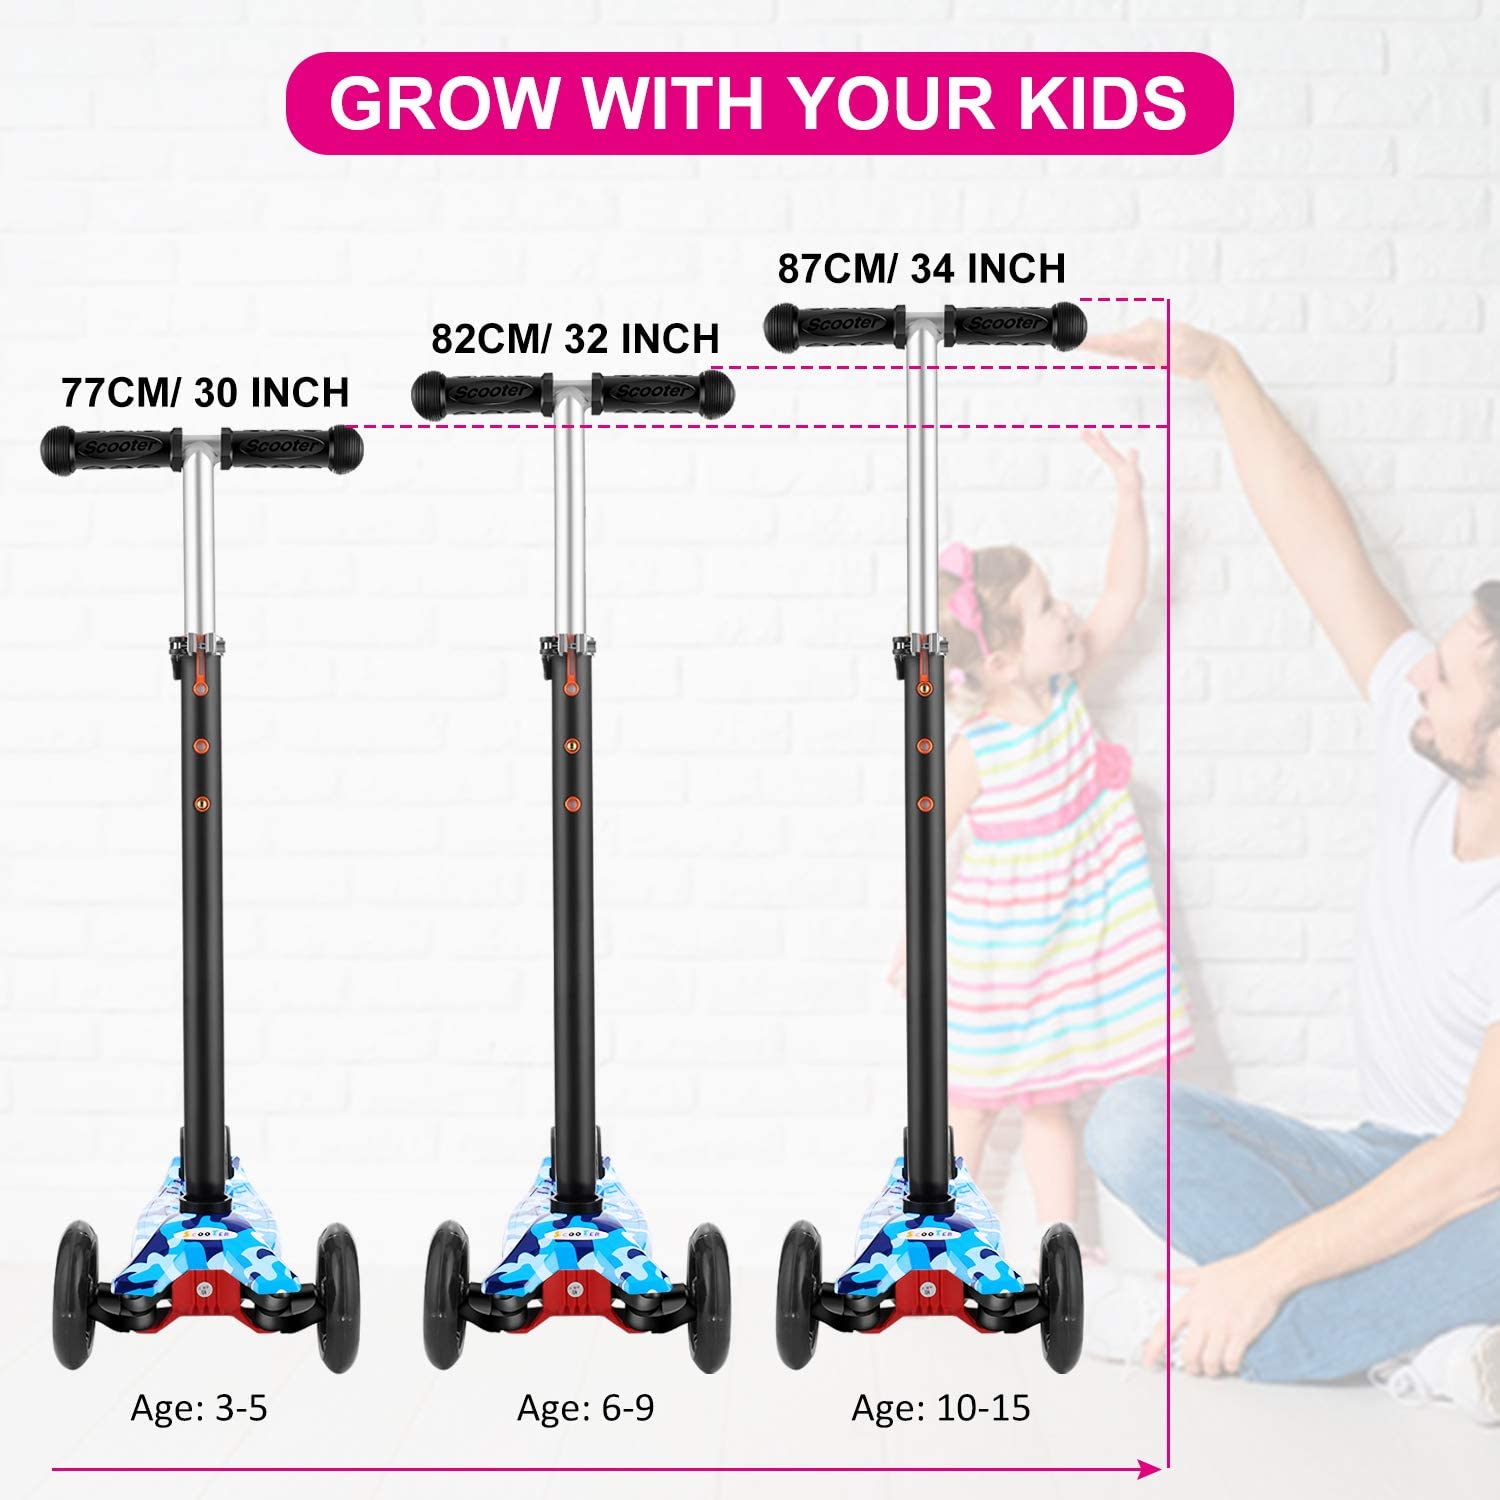 Adjustable Height Scooter for Children Ages 3-12 Kick Scooter for Toddlers Girls /& Boys with LED Light Up Scooters Wheels Hikole Scooter for Kids